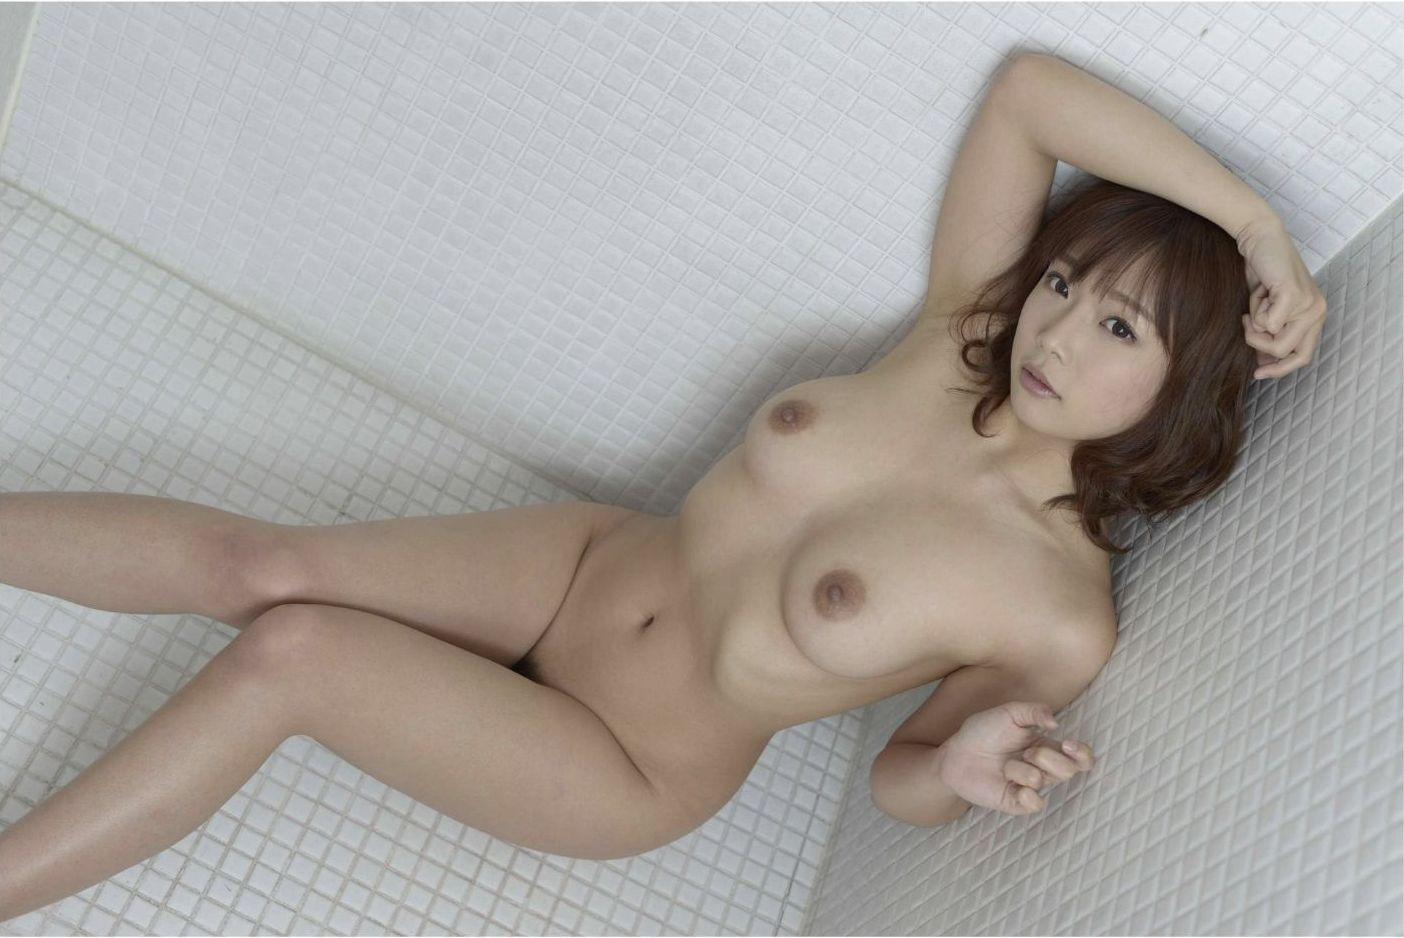 SOFT ON DEMAND GRAVURE COLLECTION 紗倉まな02 photo 138